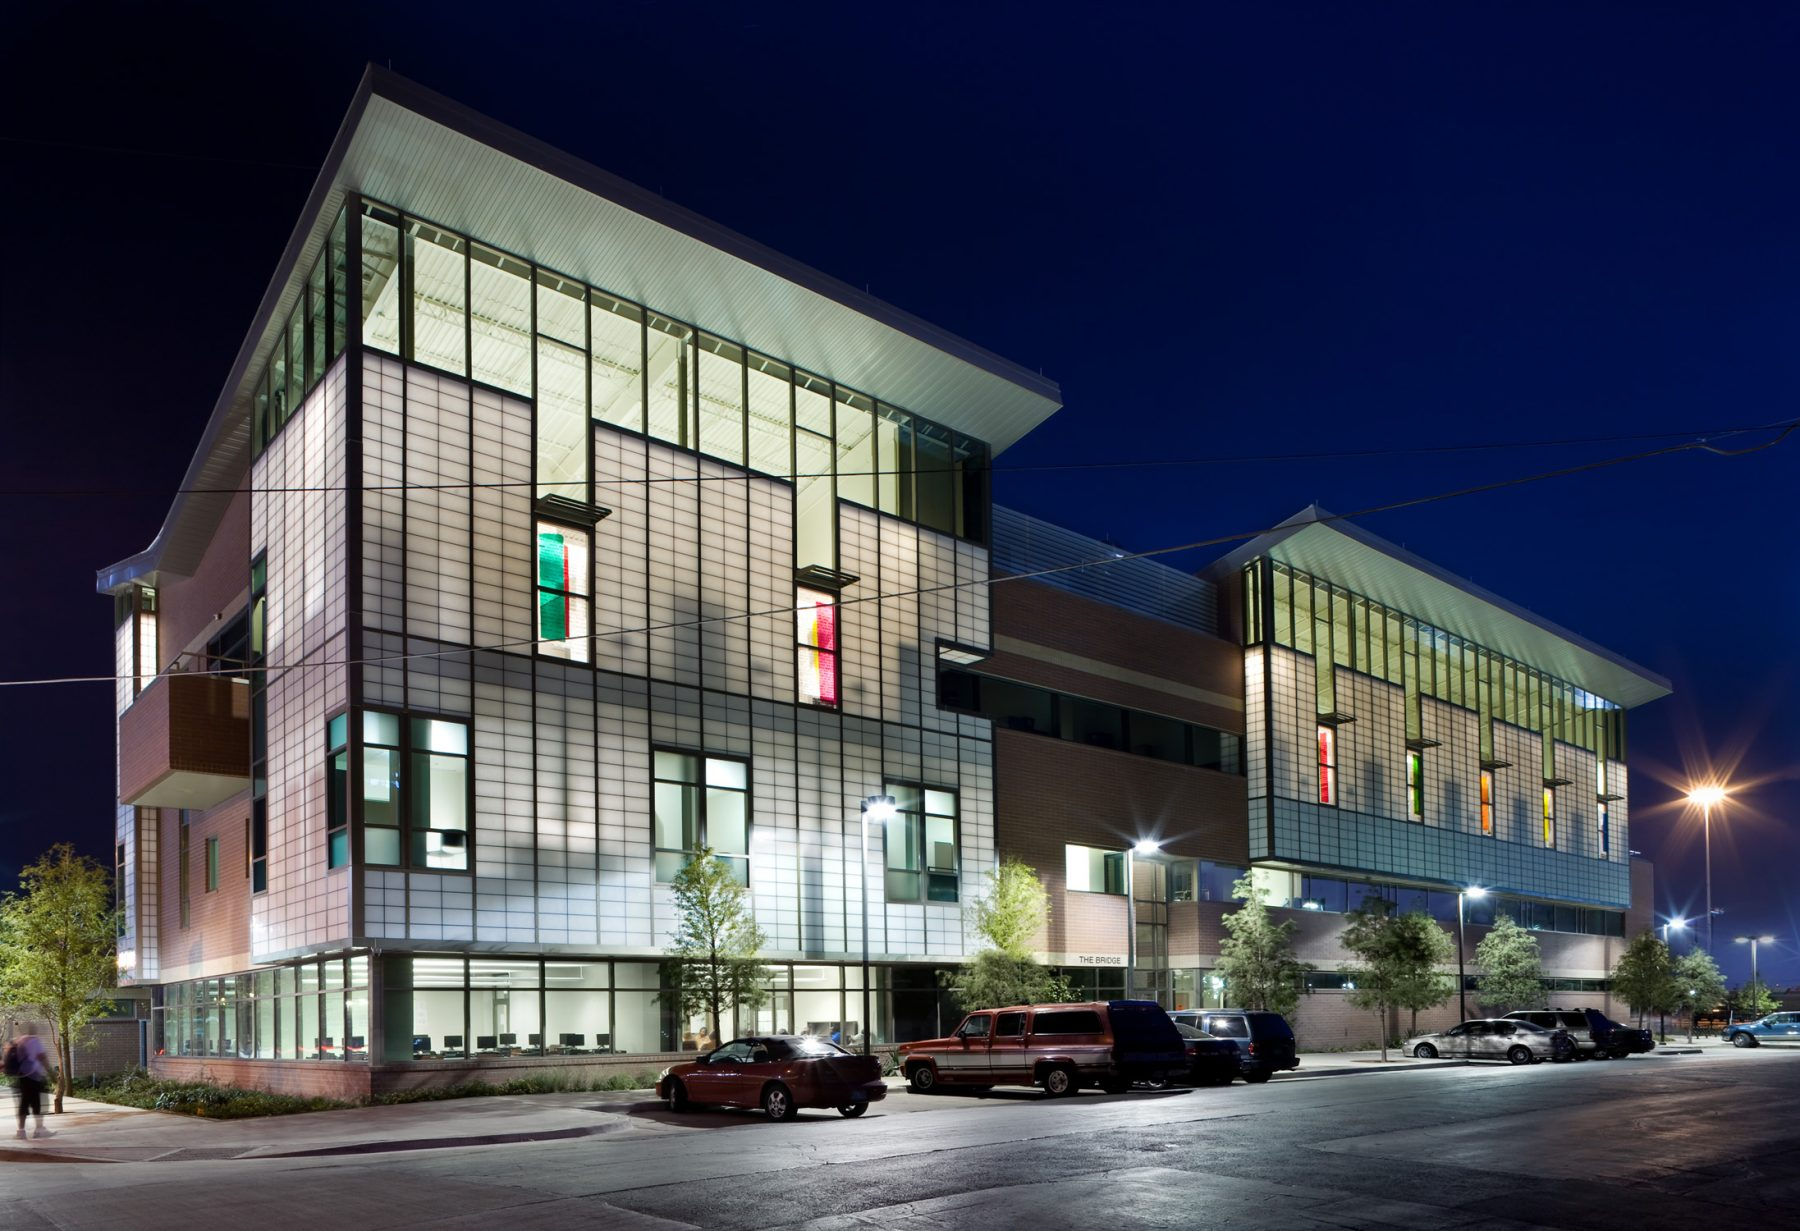 05 The Bridge Homeless Recovery Center Hero Image Caco Architecture